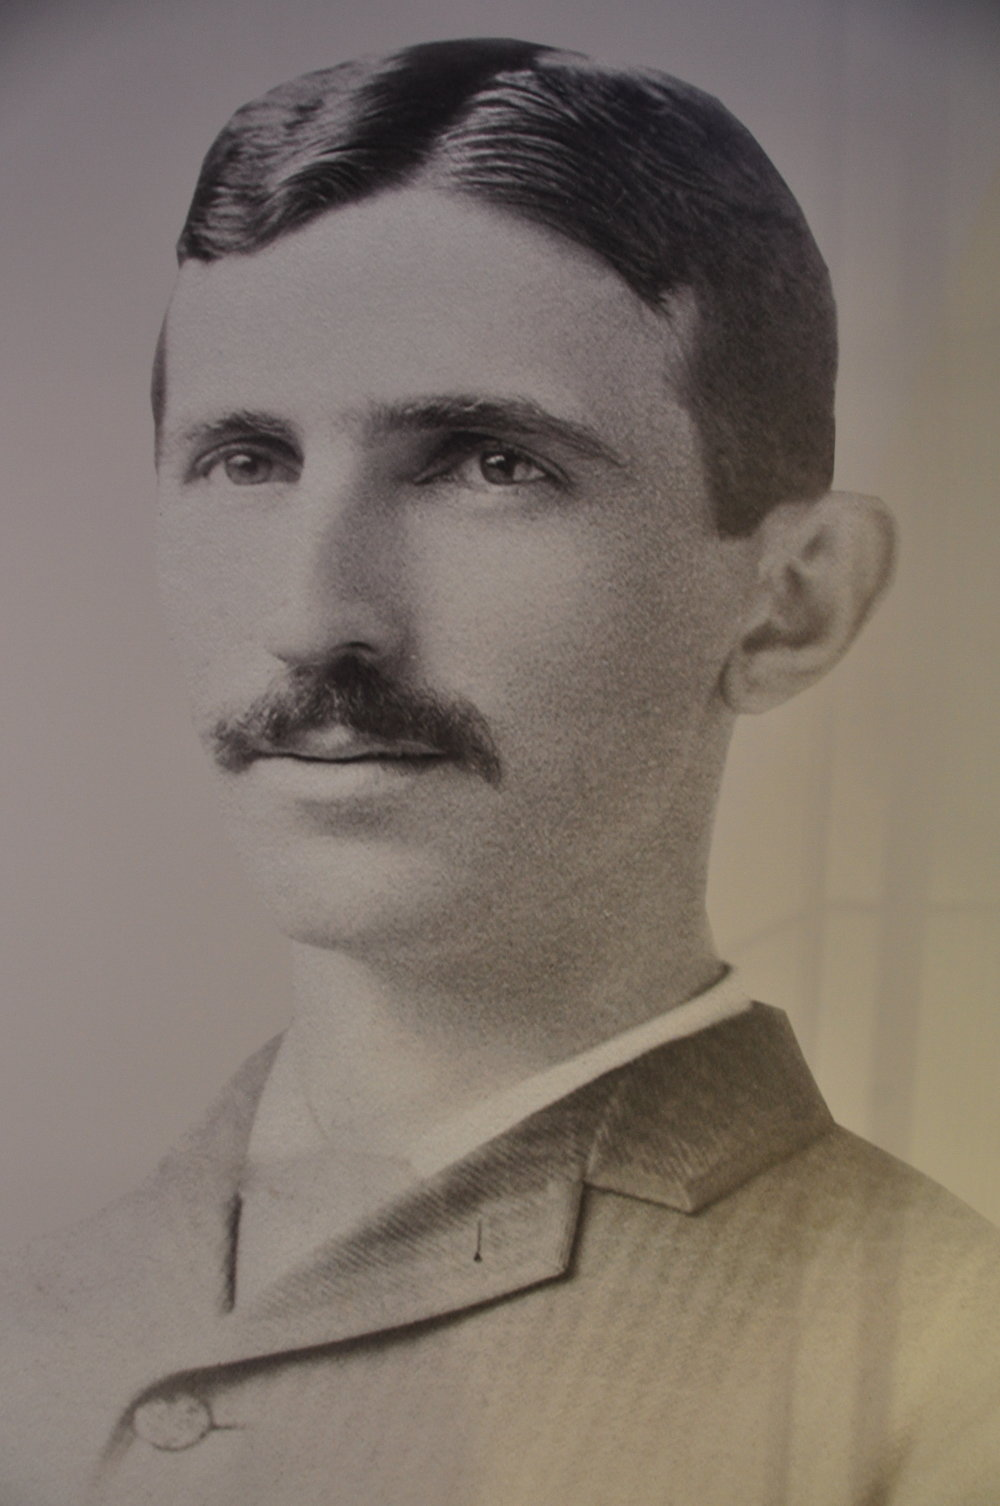 A portrait of Tesla at the Nikola Tesla Museum, Belgrade